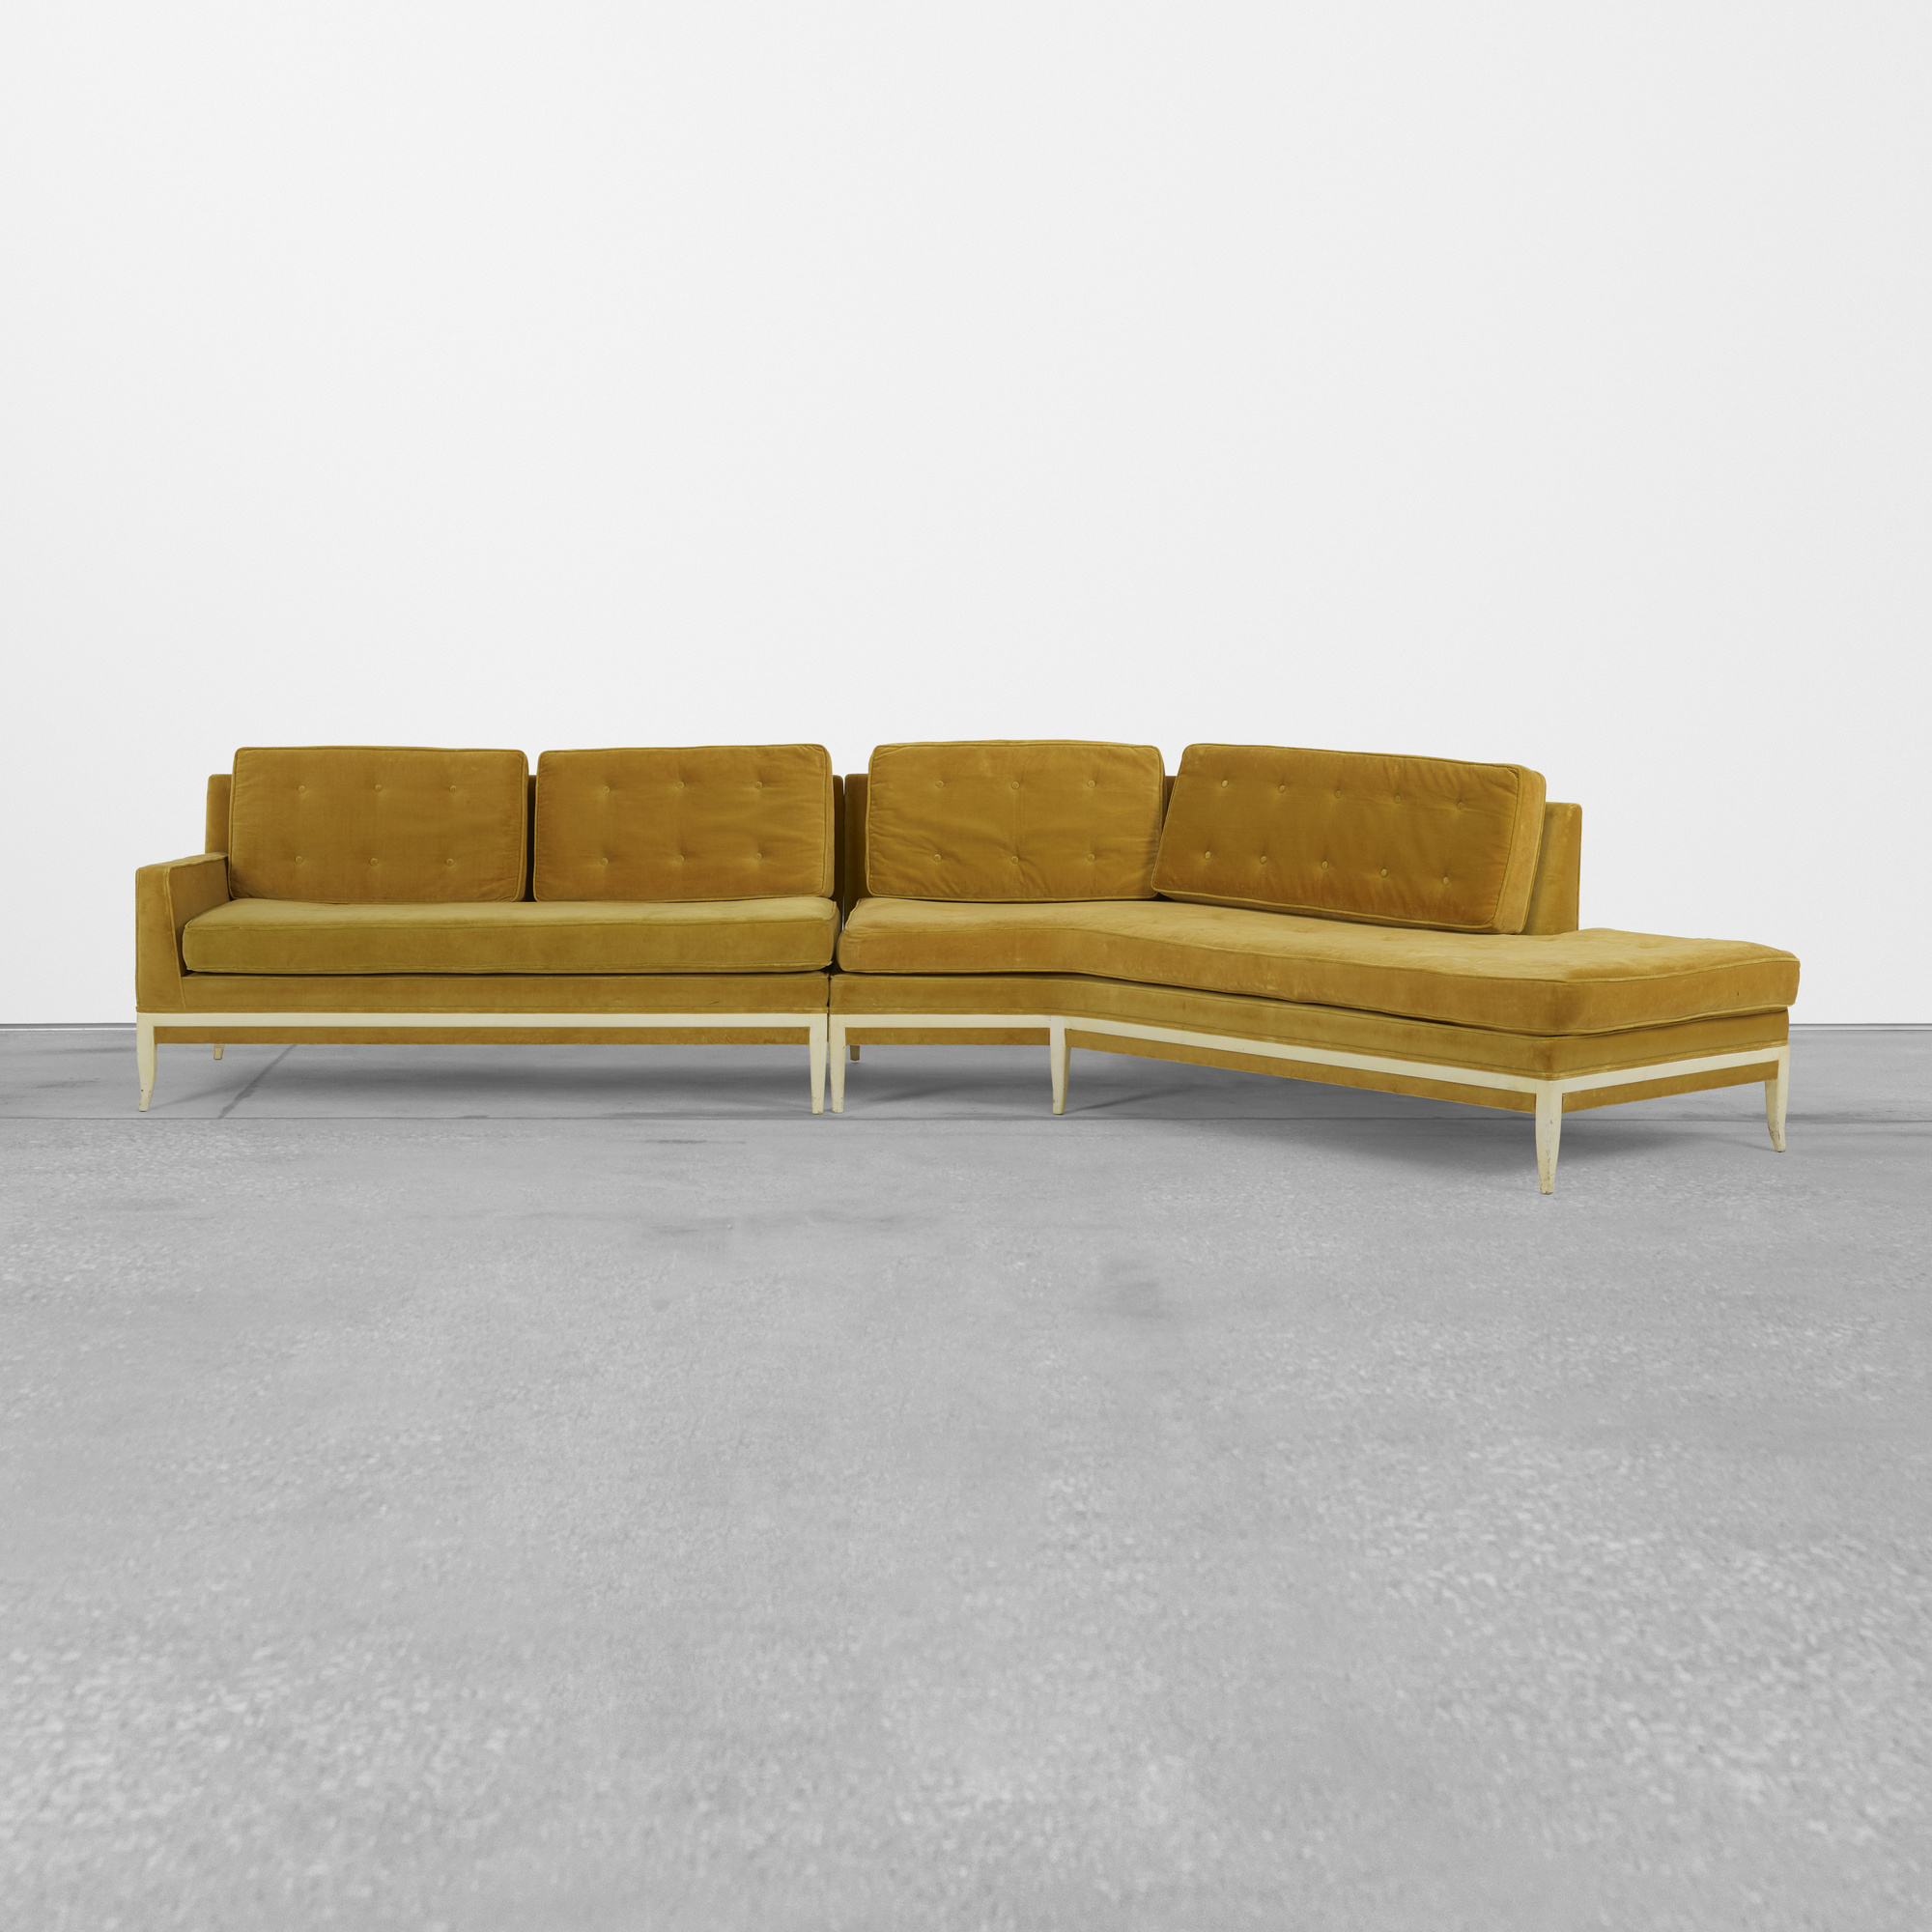 392: Tommi Parzinger / sectional sofa (1 of 3)